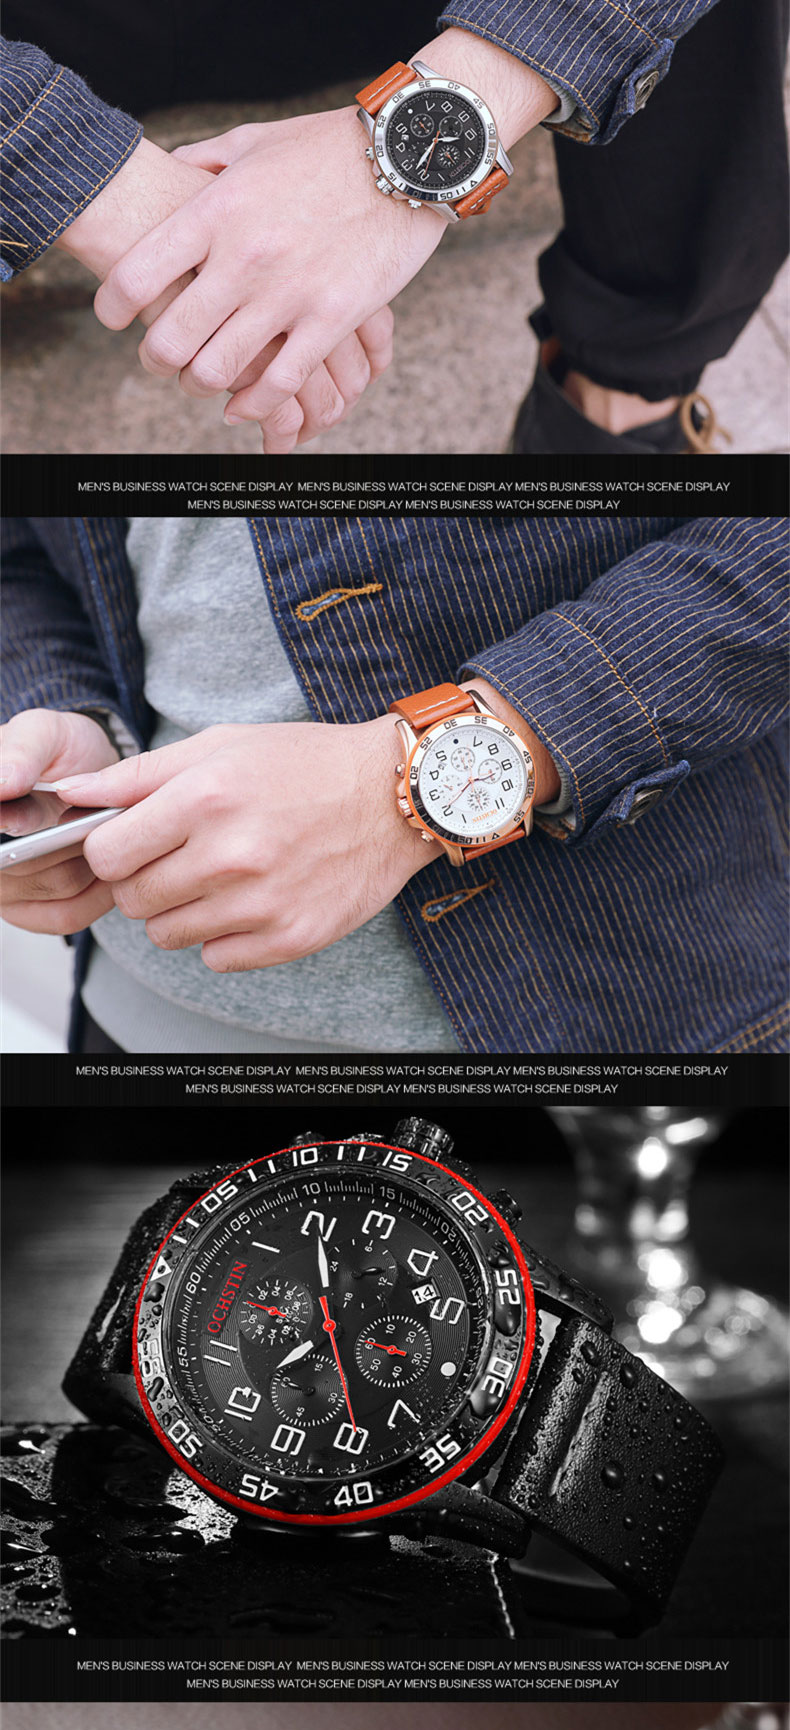 17 Men Watches Luxury Top Brand OCHSTIN Sports Chronograph Fashion Male Dress Leather Belt Clock Waterproof Quartz Wrist Watch 9